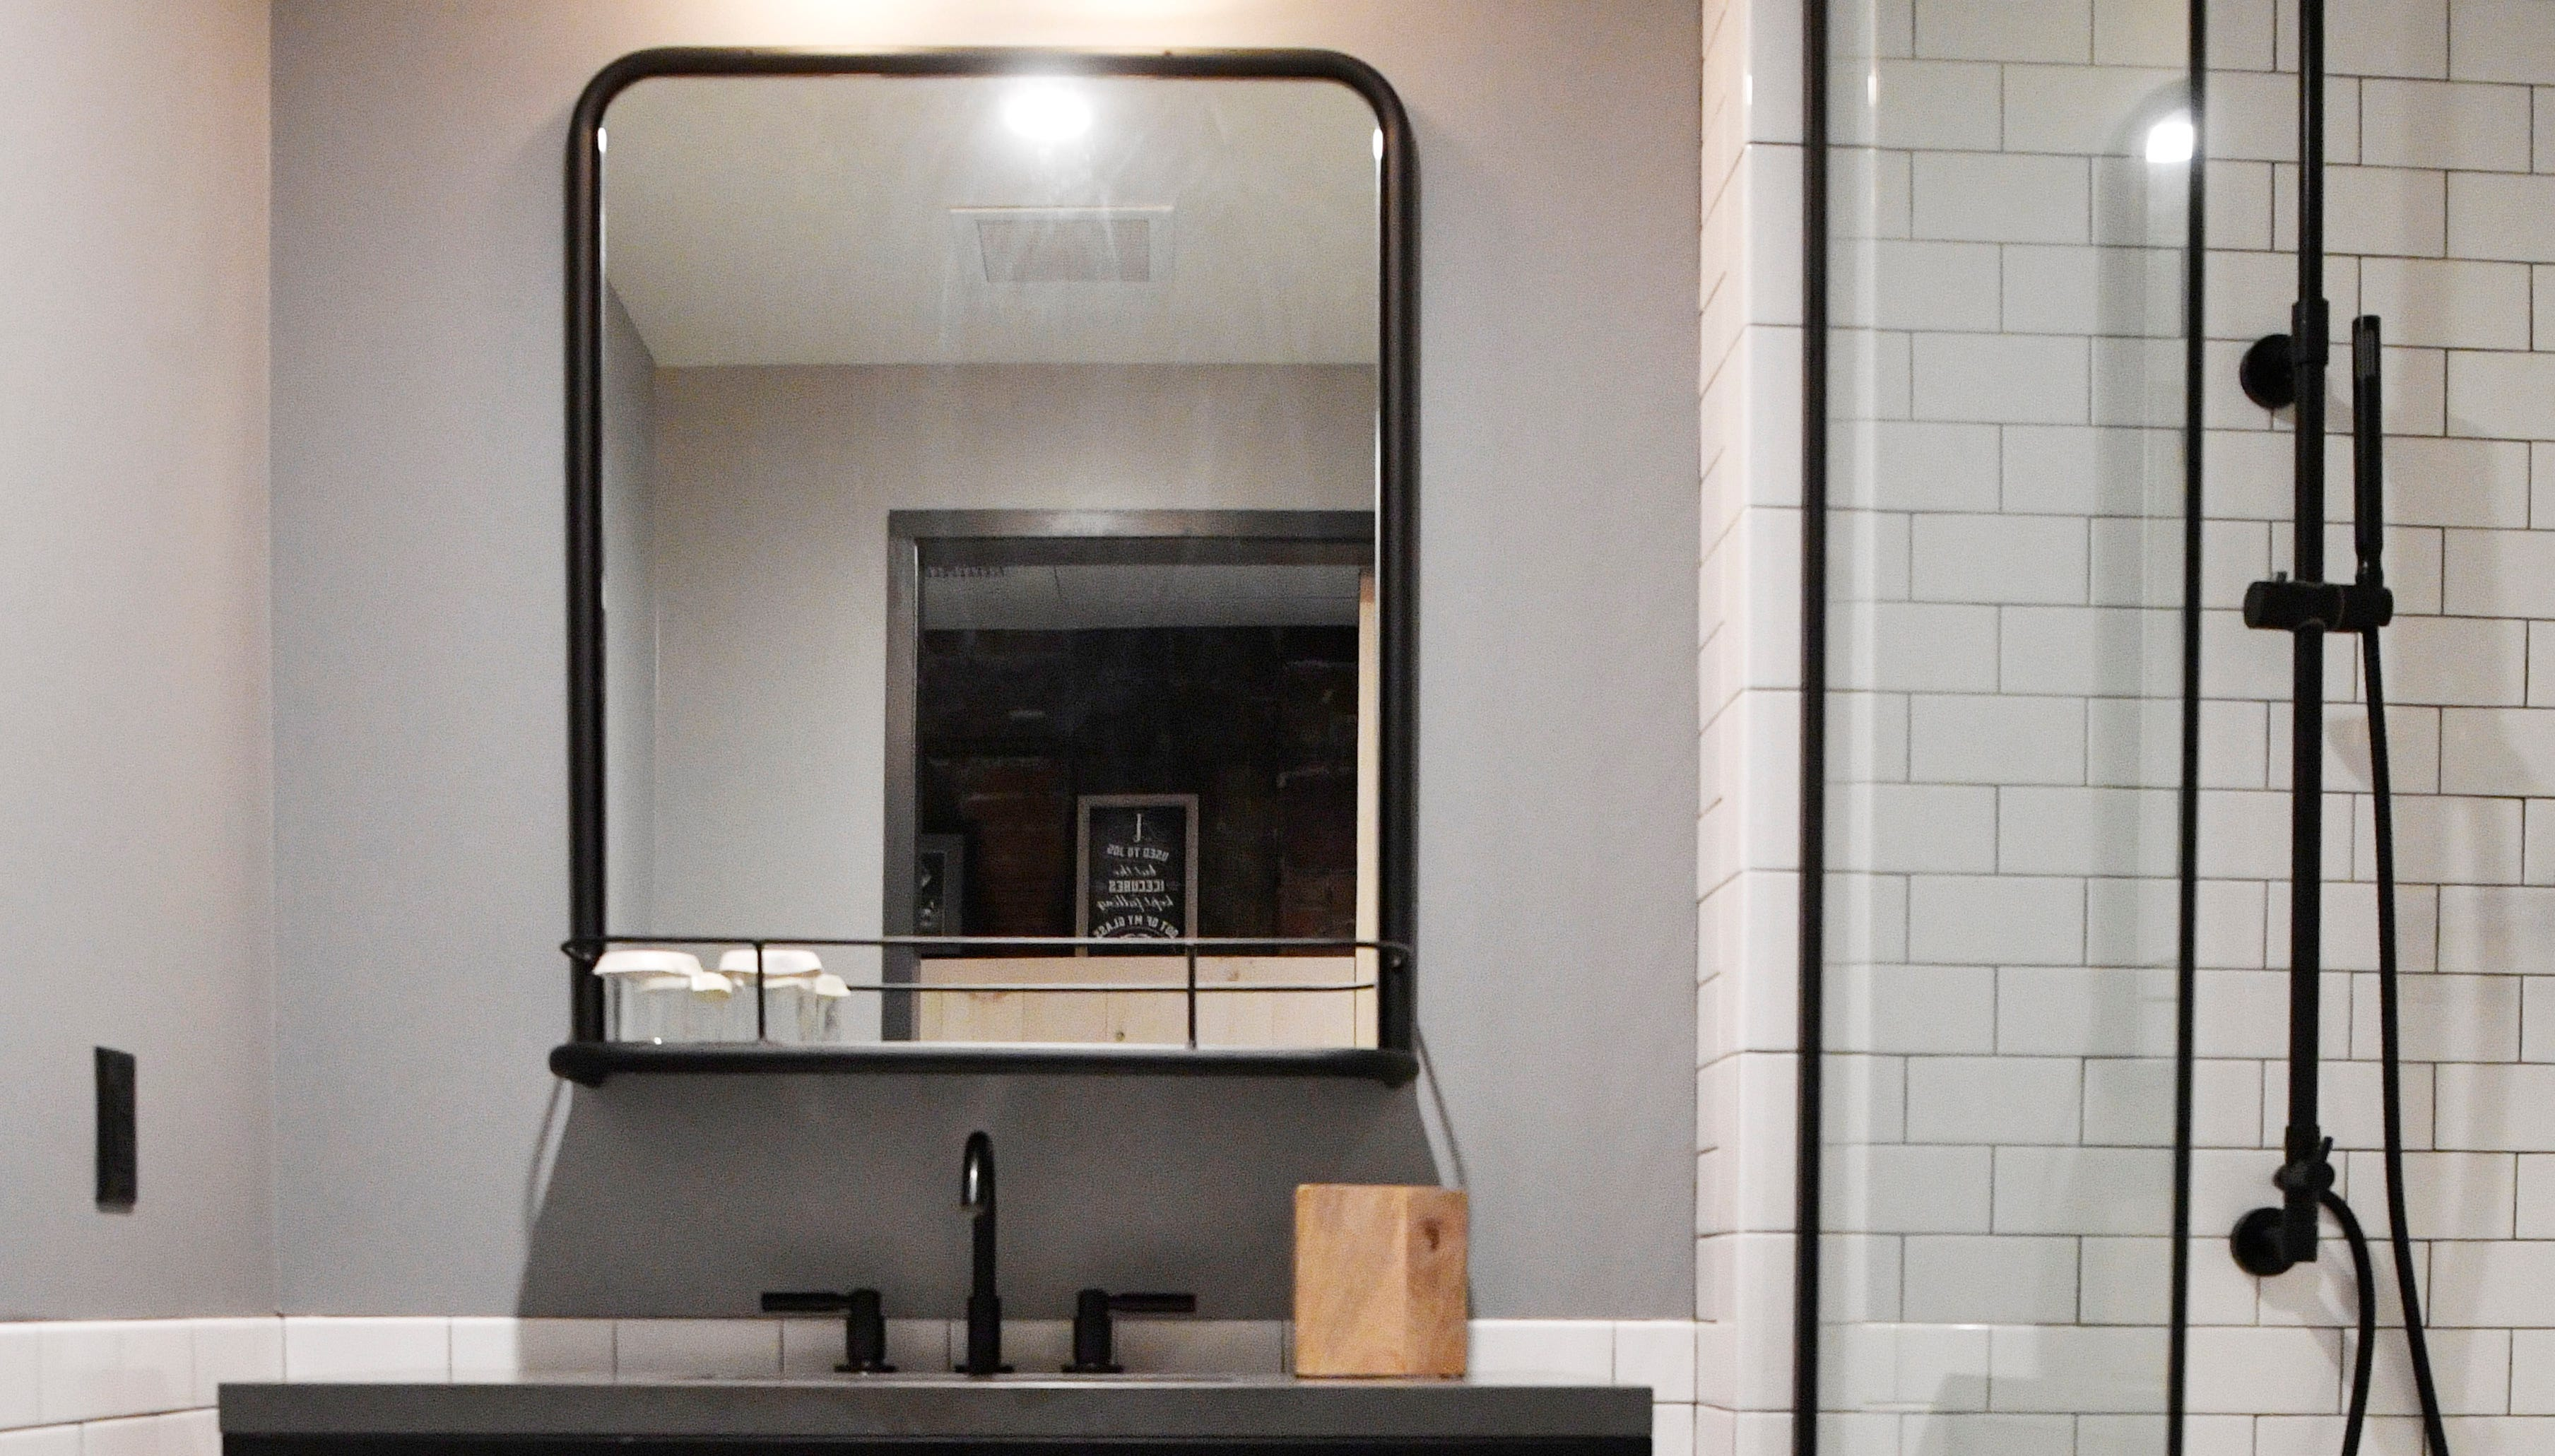 Moxy Hotel is a new hotel coming to Lower Broadway. It's geared to partiers and millennials with Instagram-ready photo areas and small modern rooms Wednesday, Feb. 20, 2019, in Nashville, Tenn.